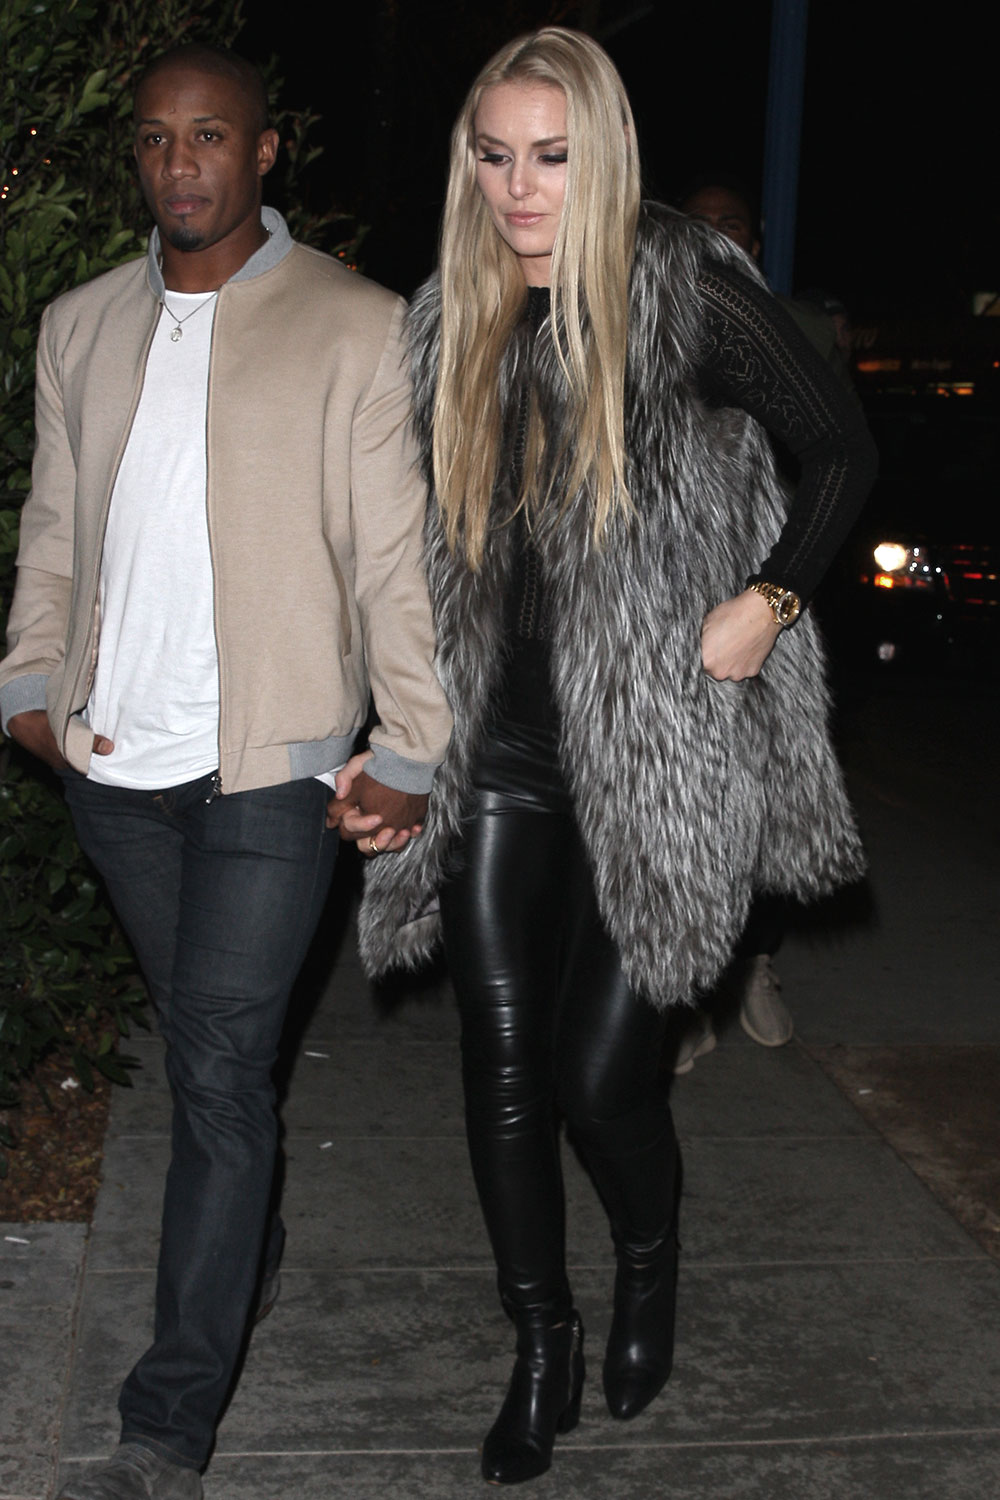 Lindsey Vonn heads to the Delilah club